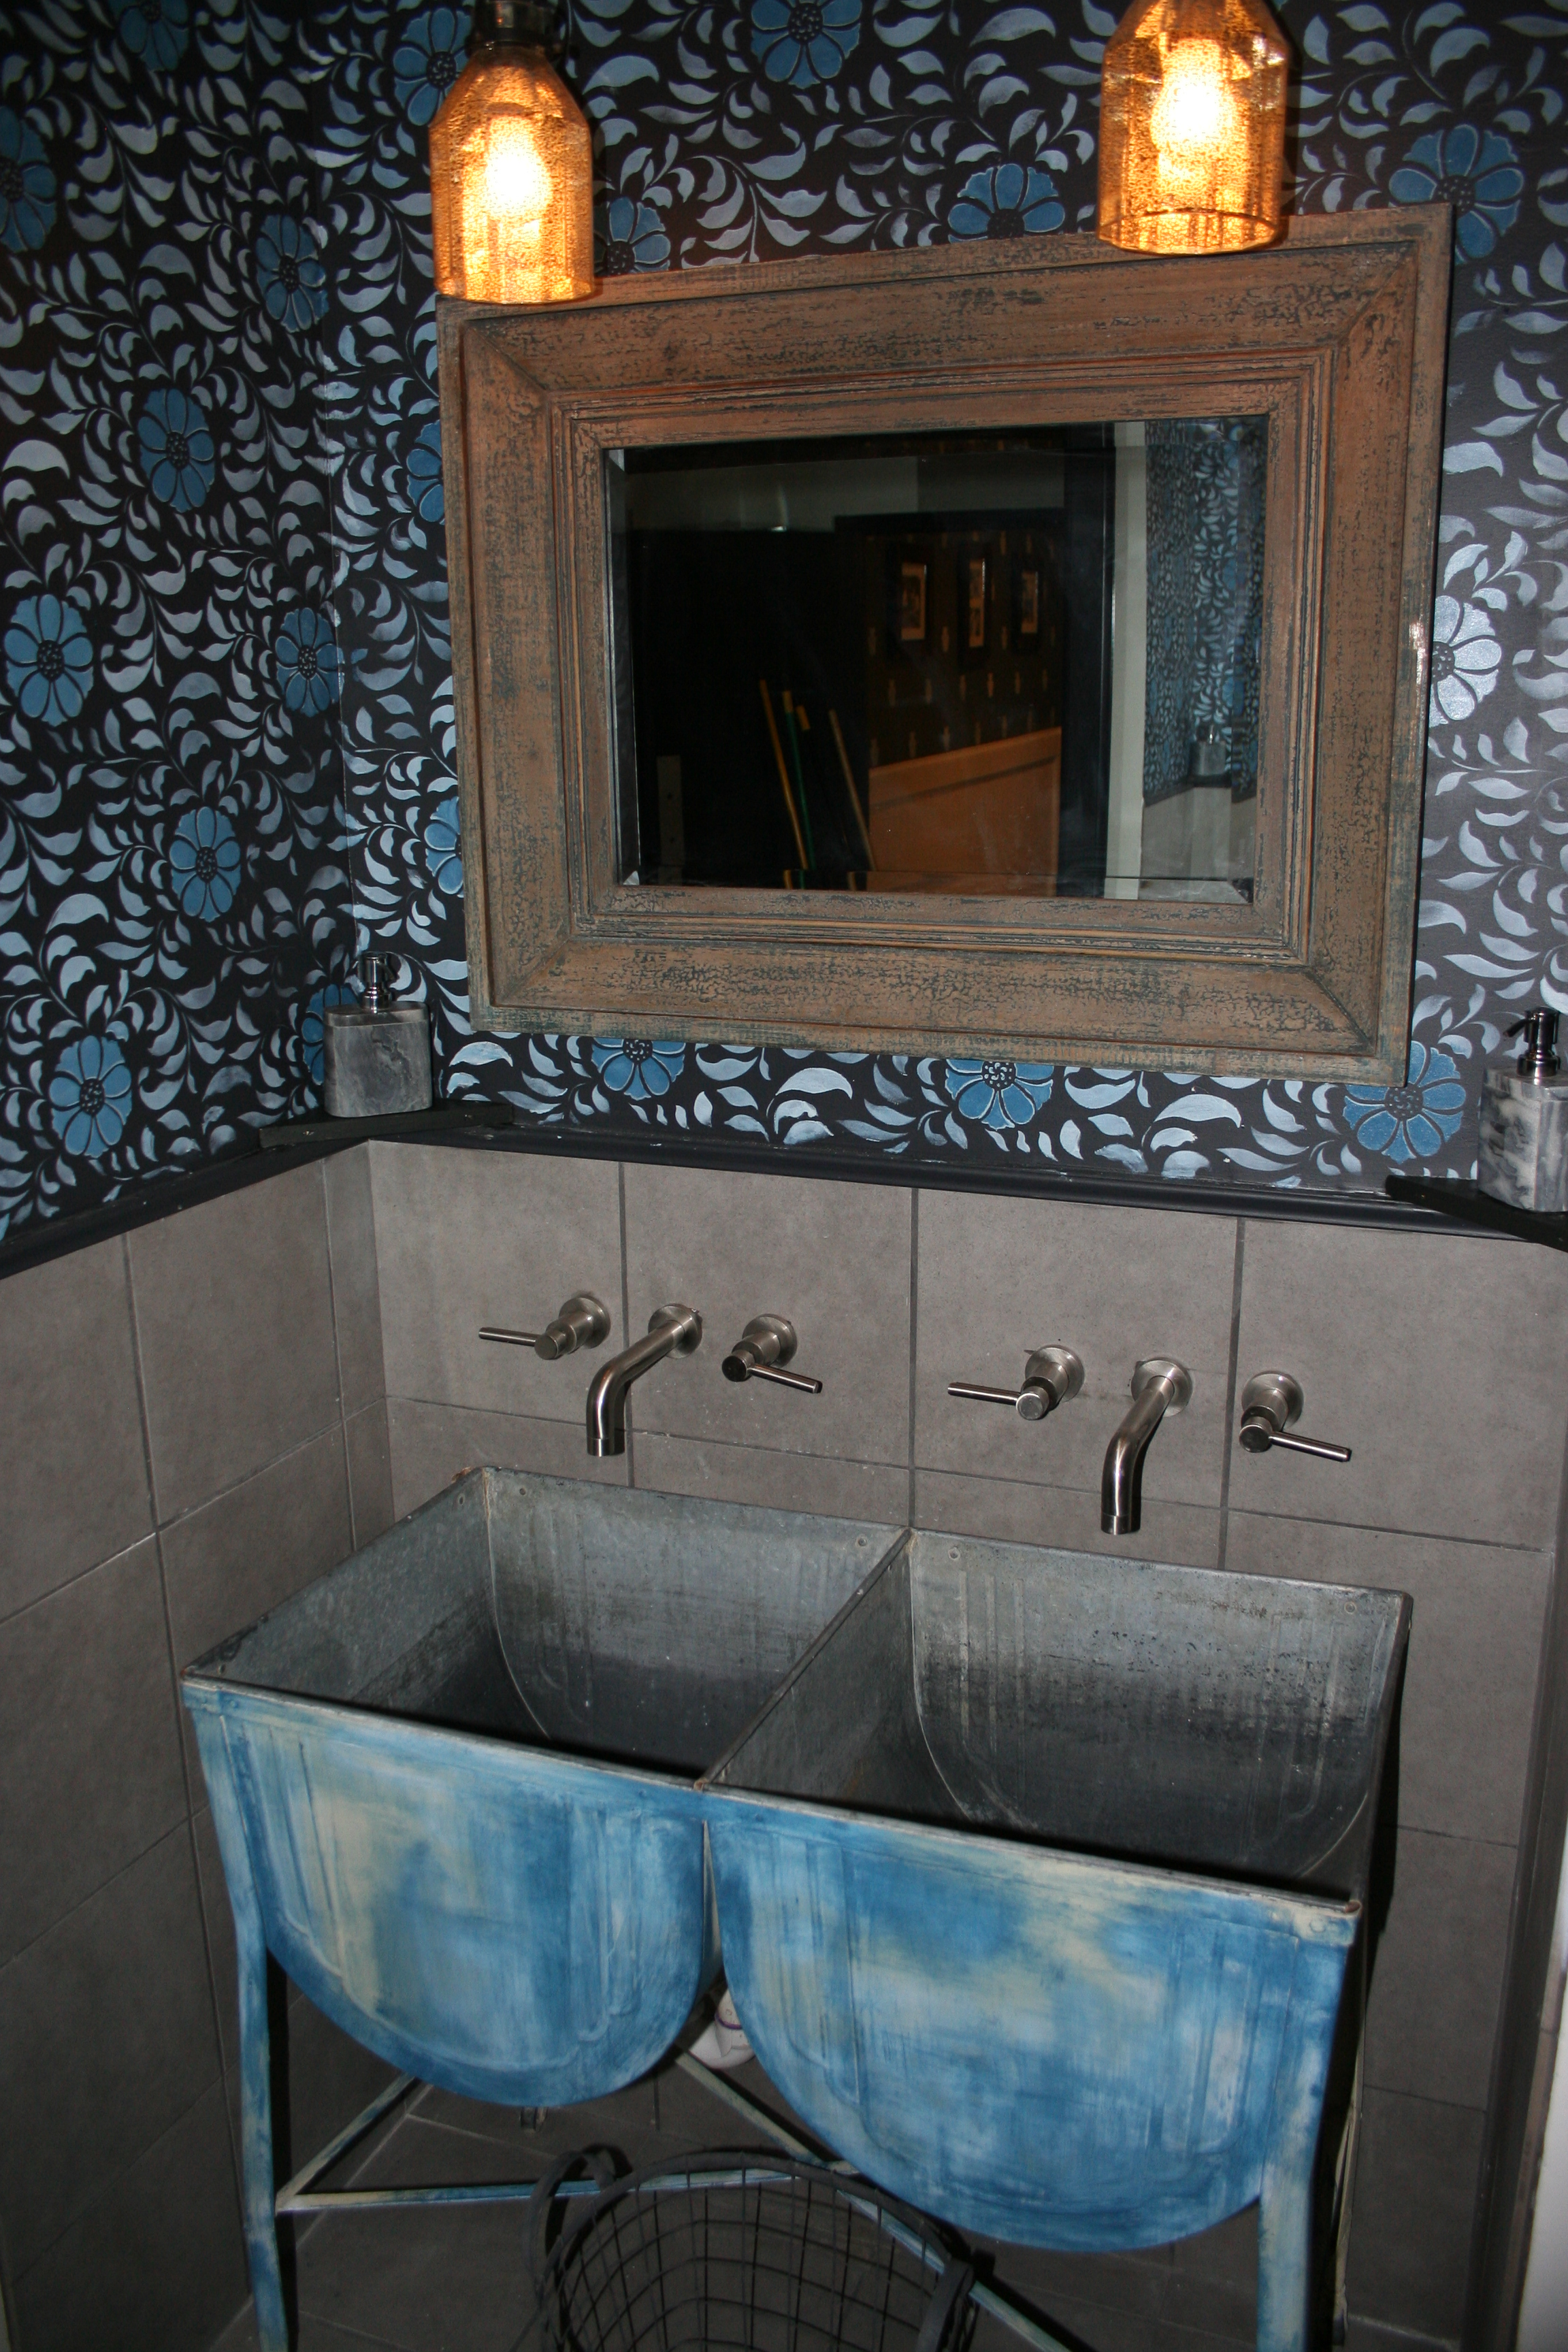 The unisex sinks made out of old washtubs from Pennsylvania. (Photo: Mark Heckathorn/DC on Heels)